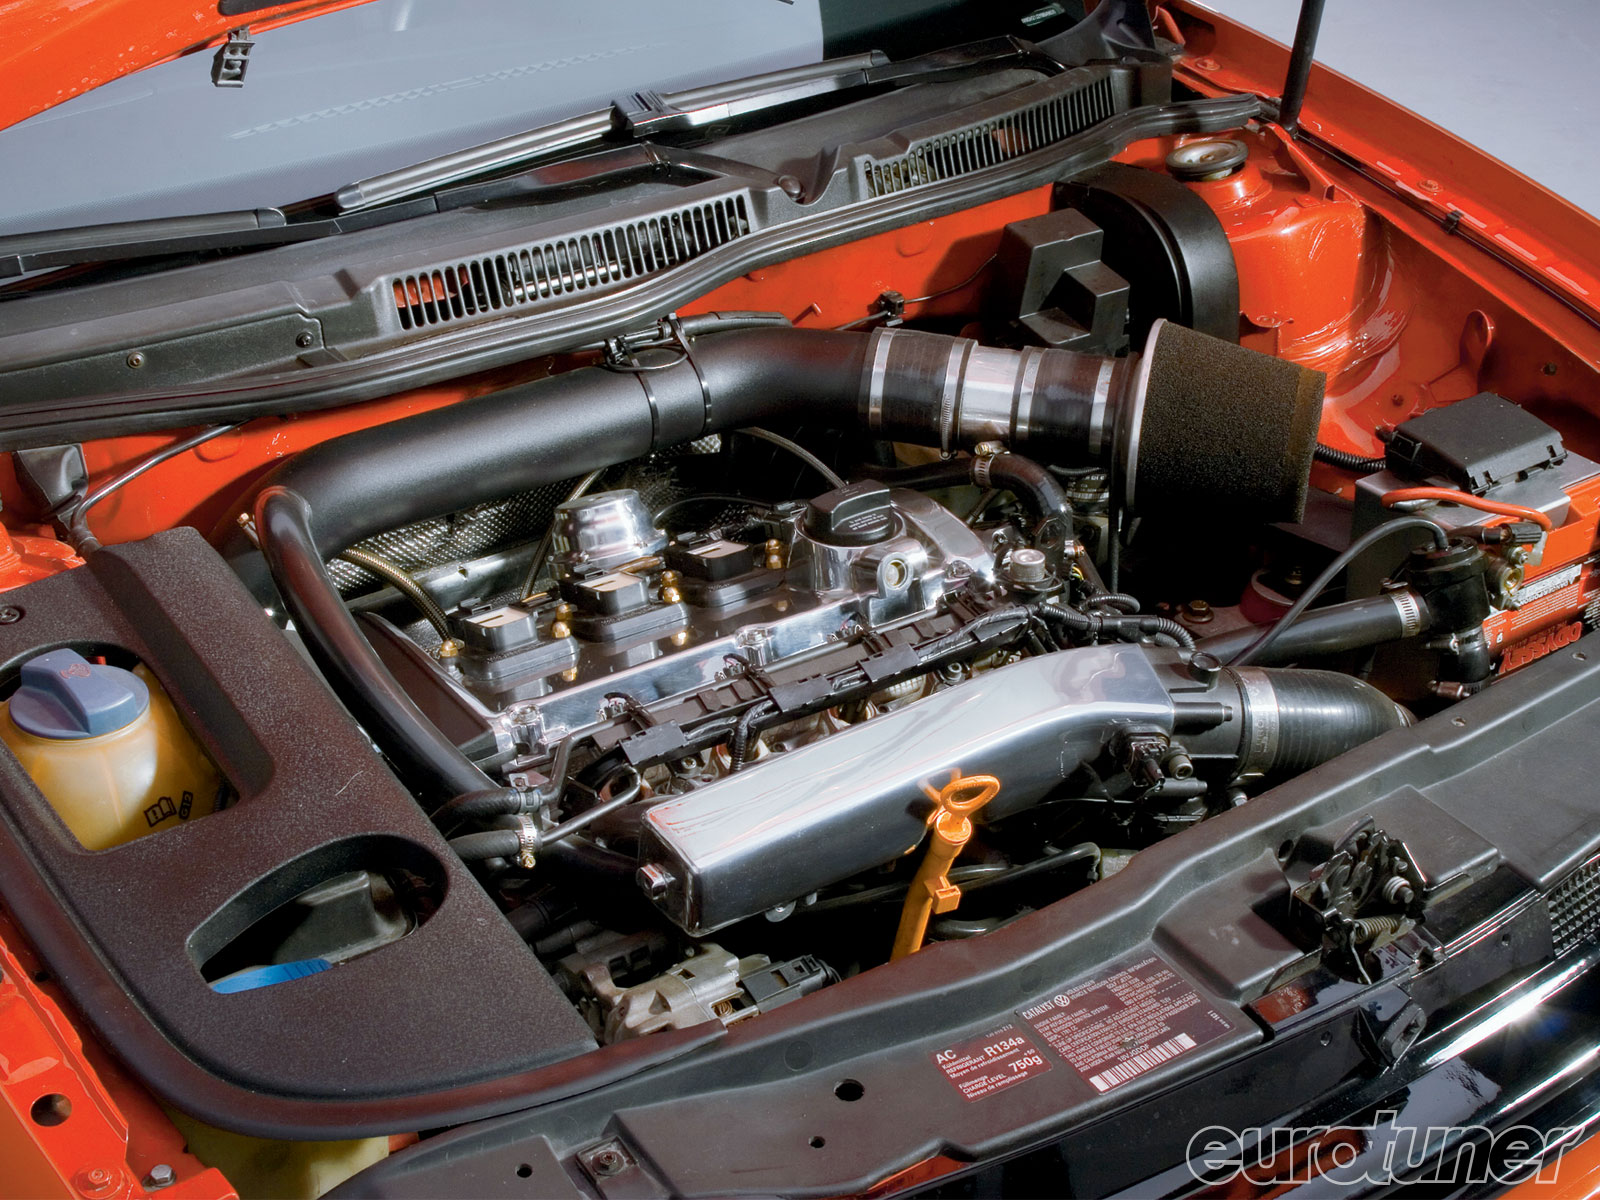 Volkswagen GTI engine #3